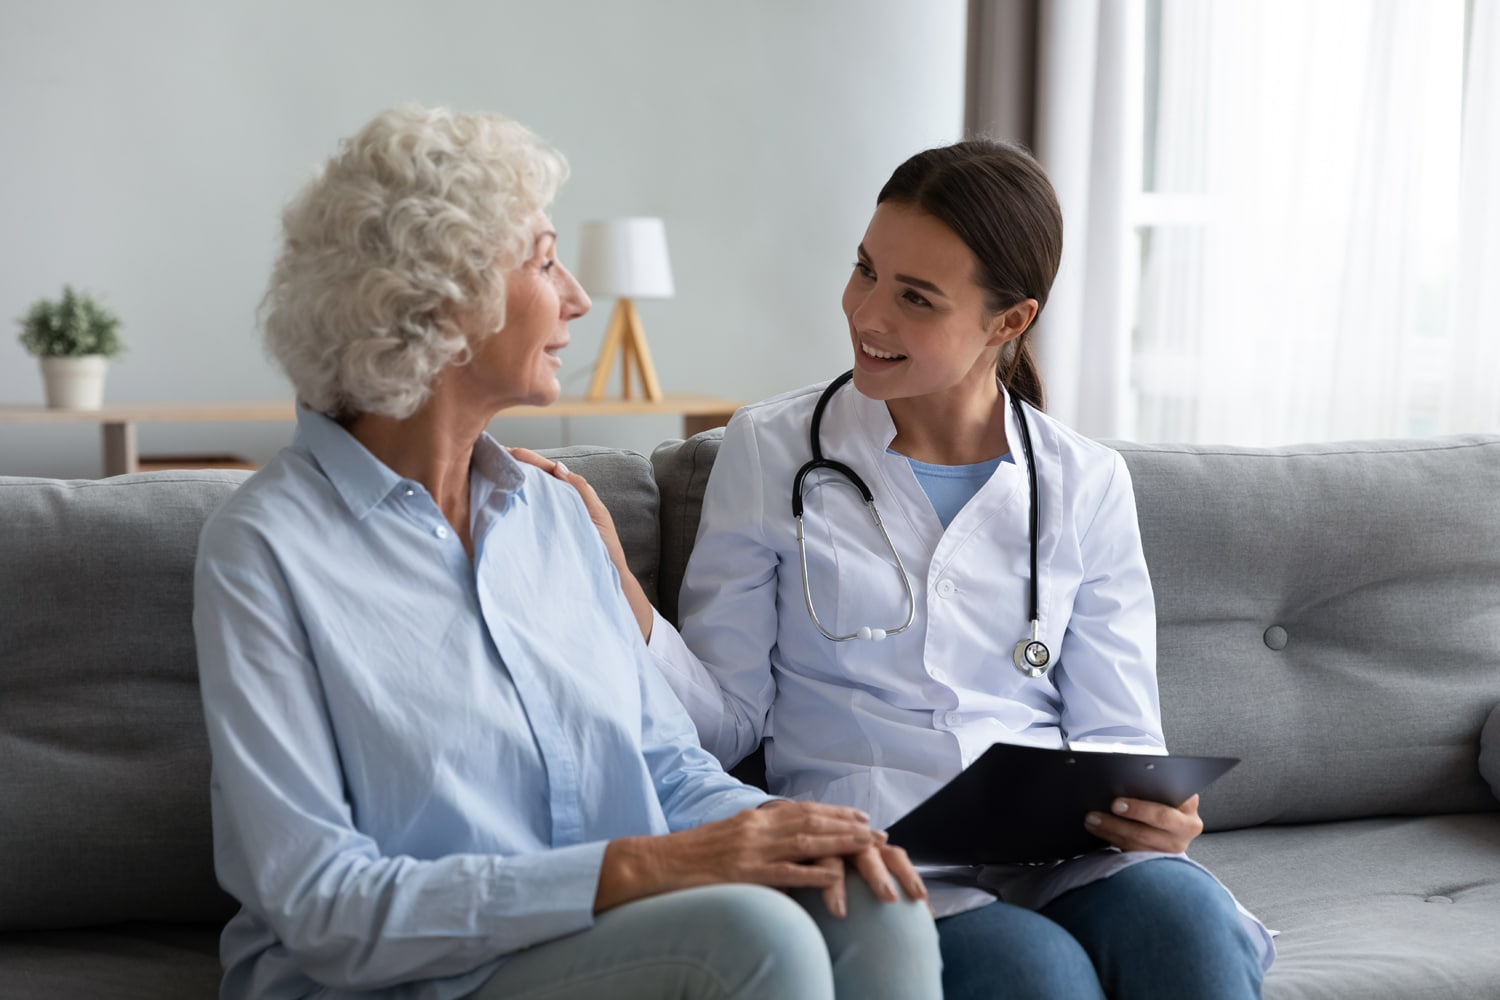 Role of personalization in healthcare member experience